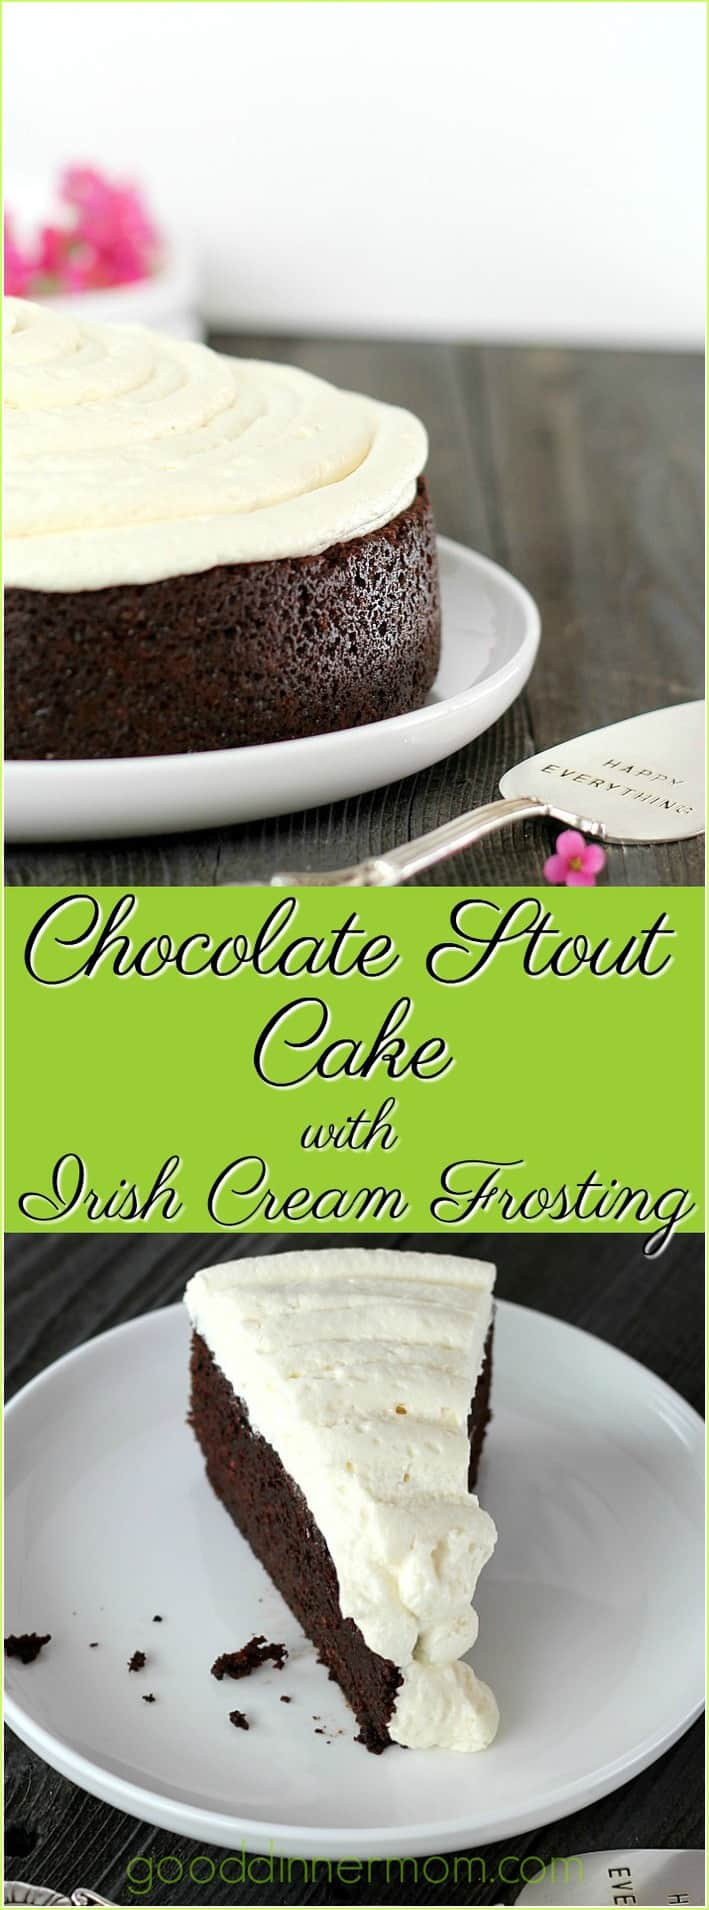 Chocolate Stout Cake with Irish Cream Frosting tastes impressive and rich, yet fresh and irresistible. One bowl recipe with cupcake and high altitude directions as well as non alcoholic instruction.